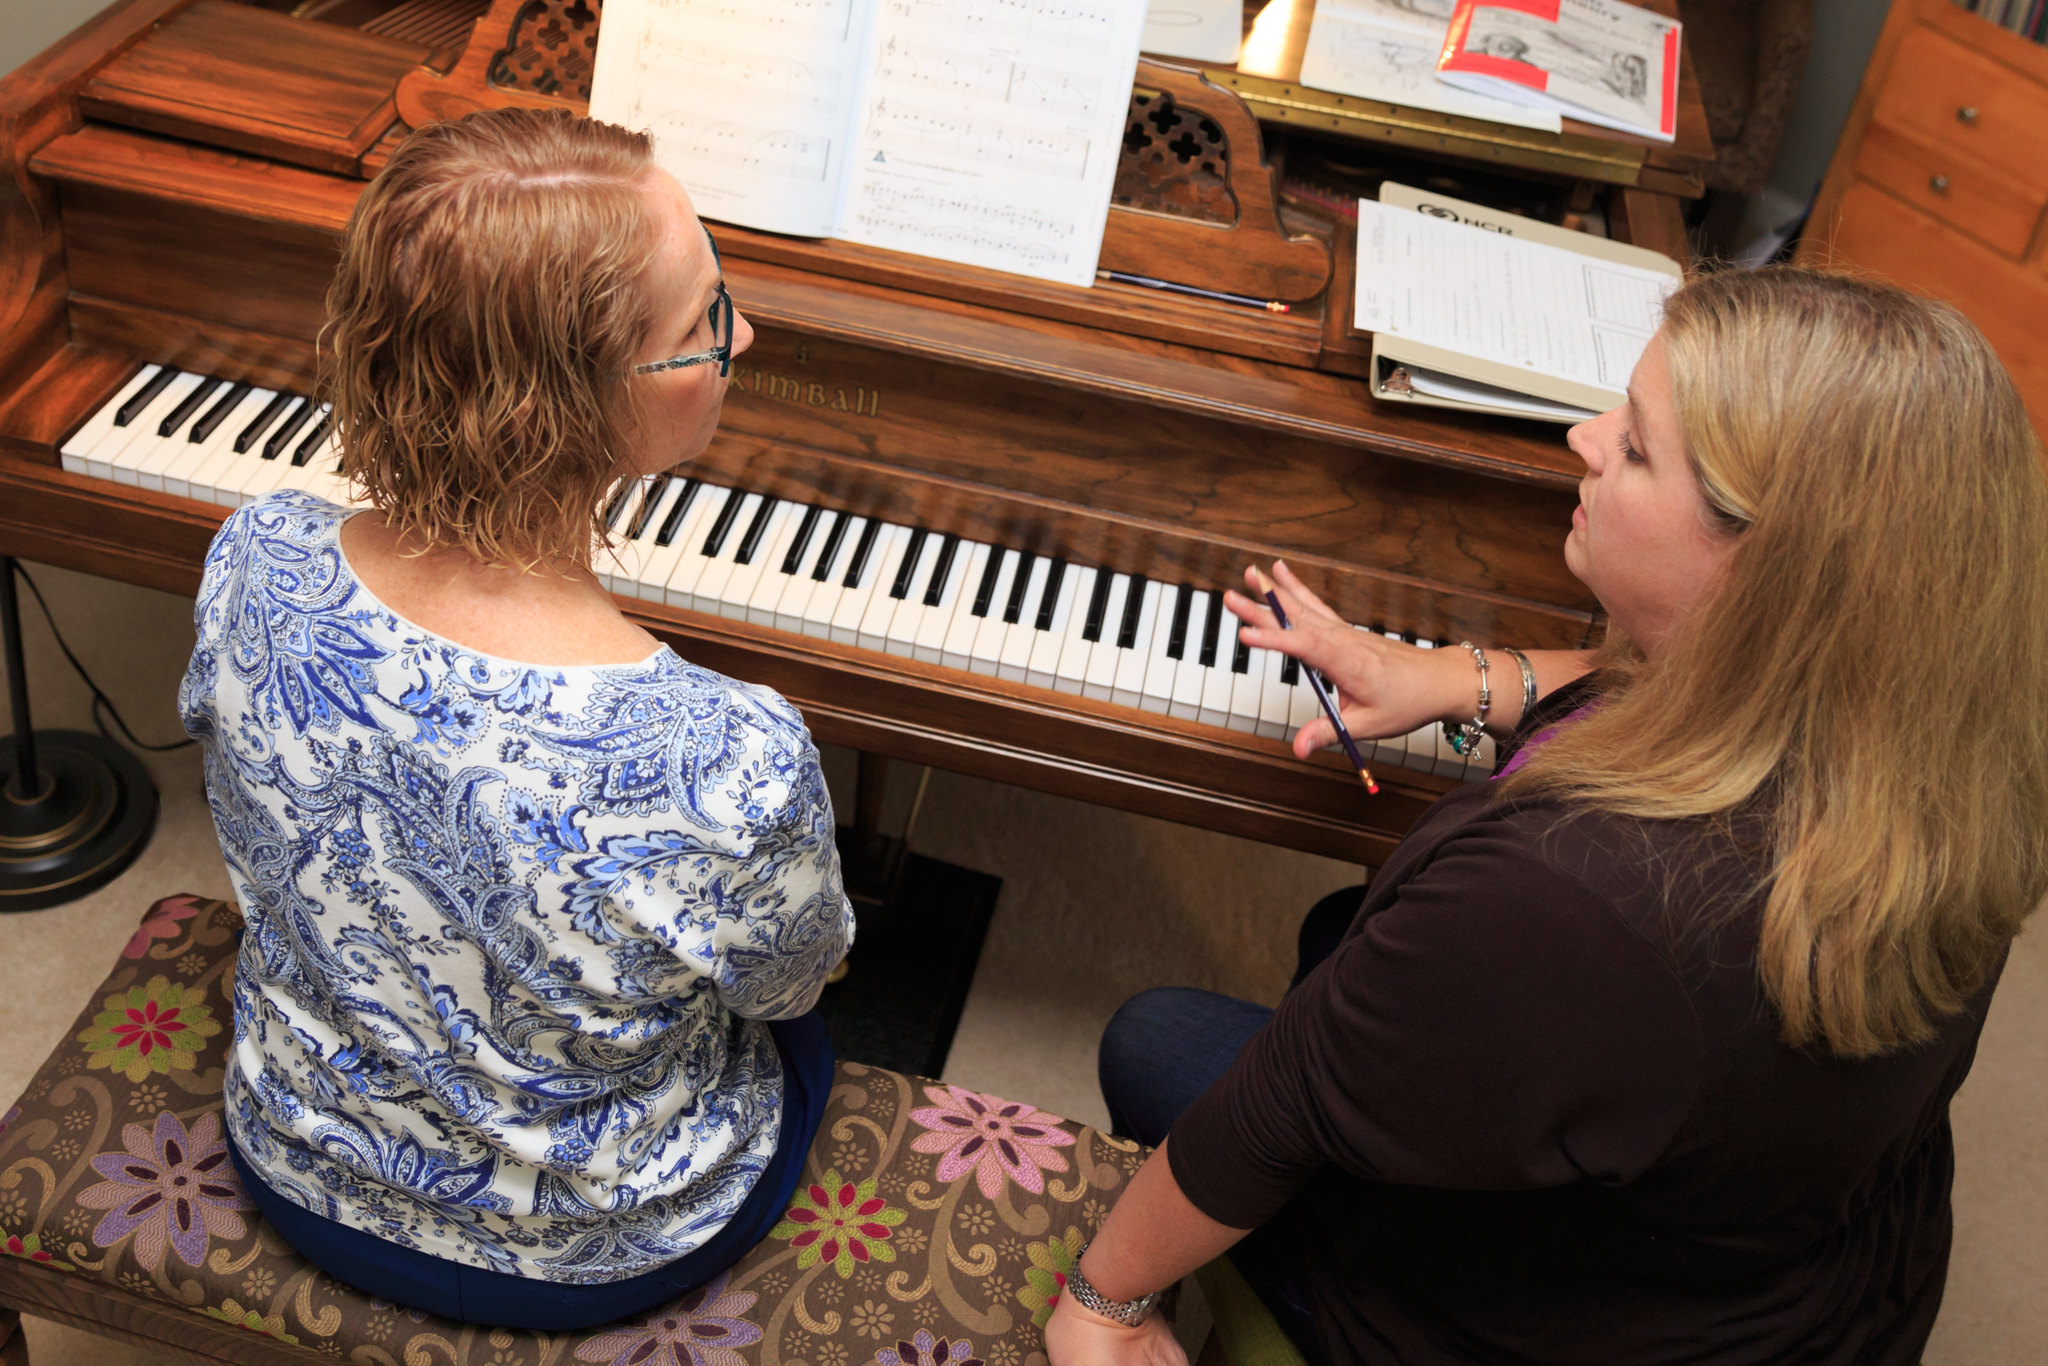 Piano Lessons have great benefits